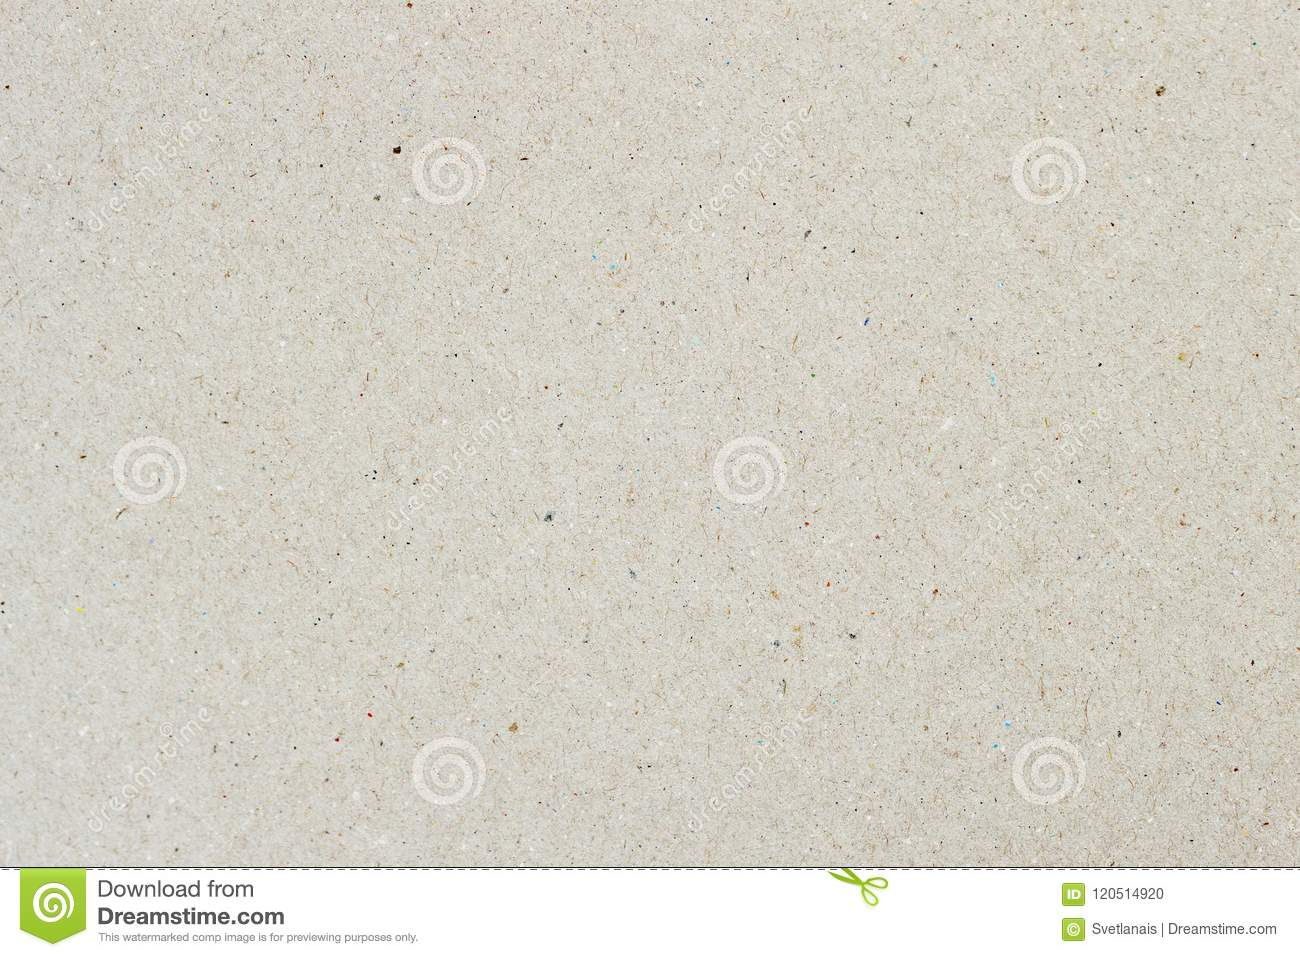 Texture of organic light cream paper, background for design with copy space text or image. Recyclable material, has